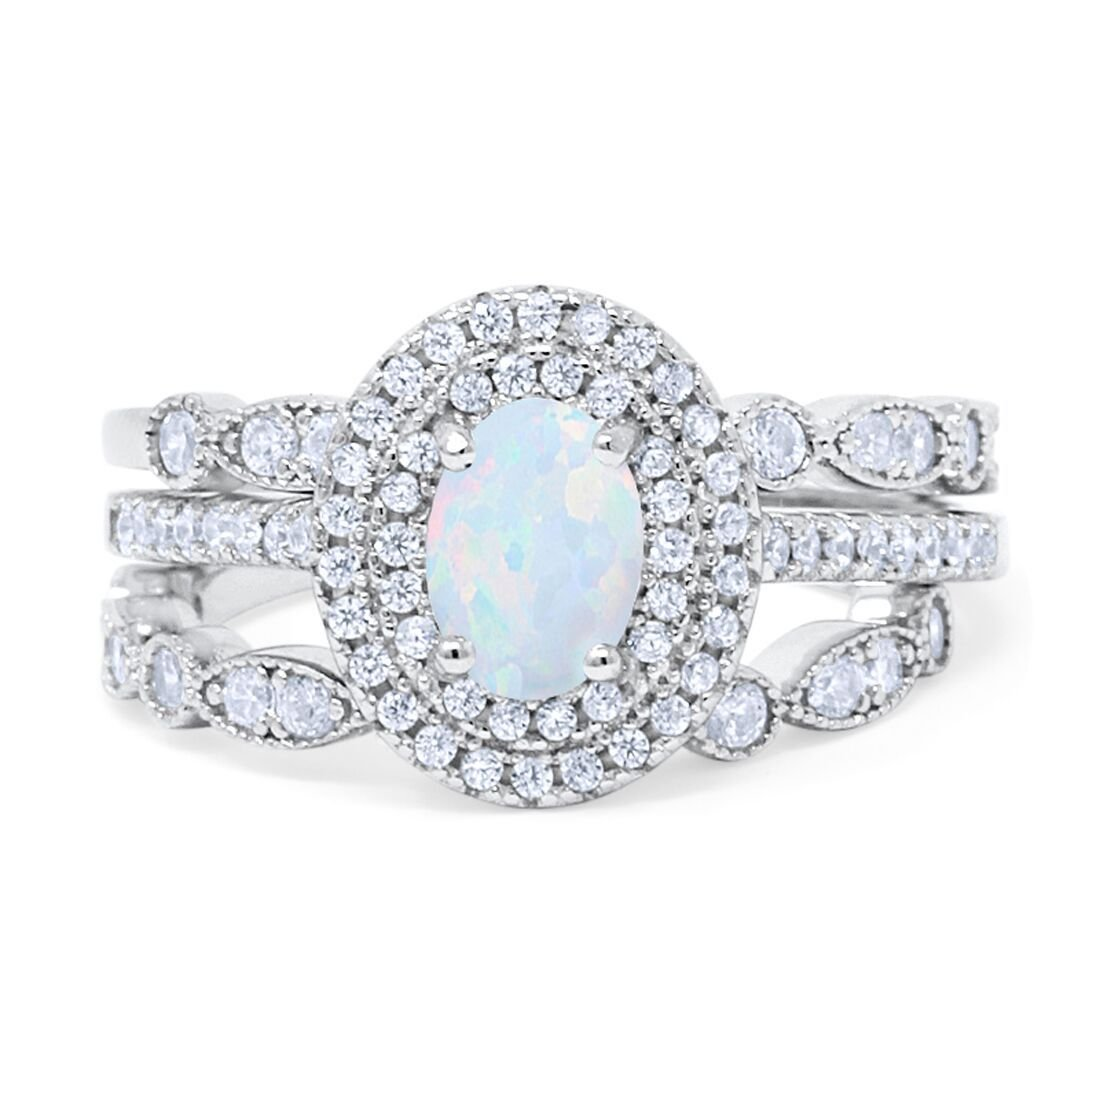 Blue Apple Co Three Piece Double Halo Art Deco Wedding Band Engagement Ring Oval CZ 925 Sterling Silver Choose Color